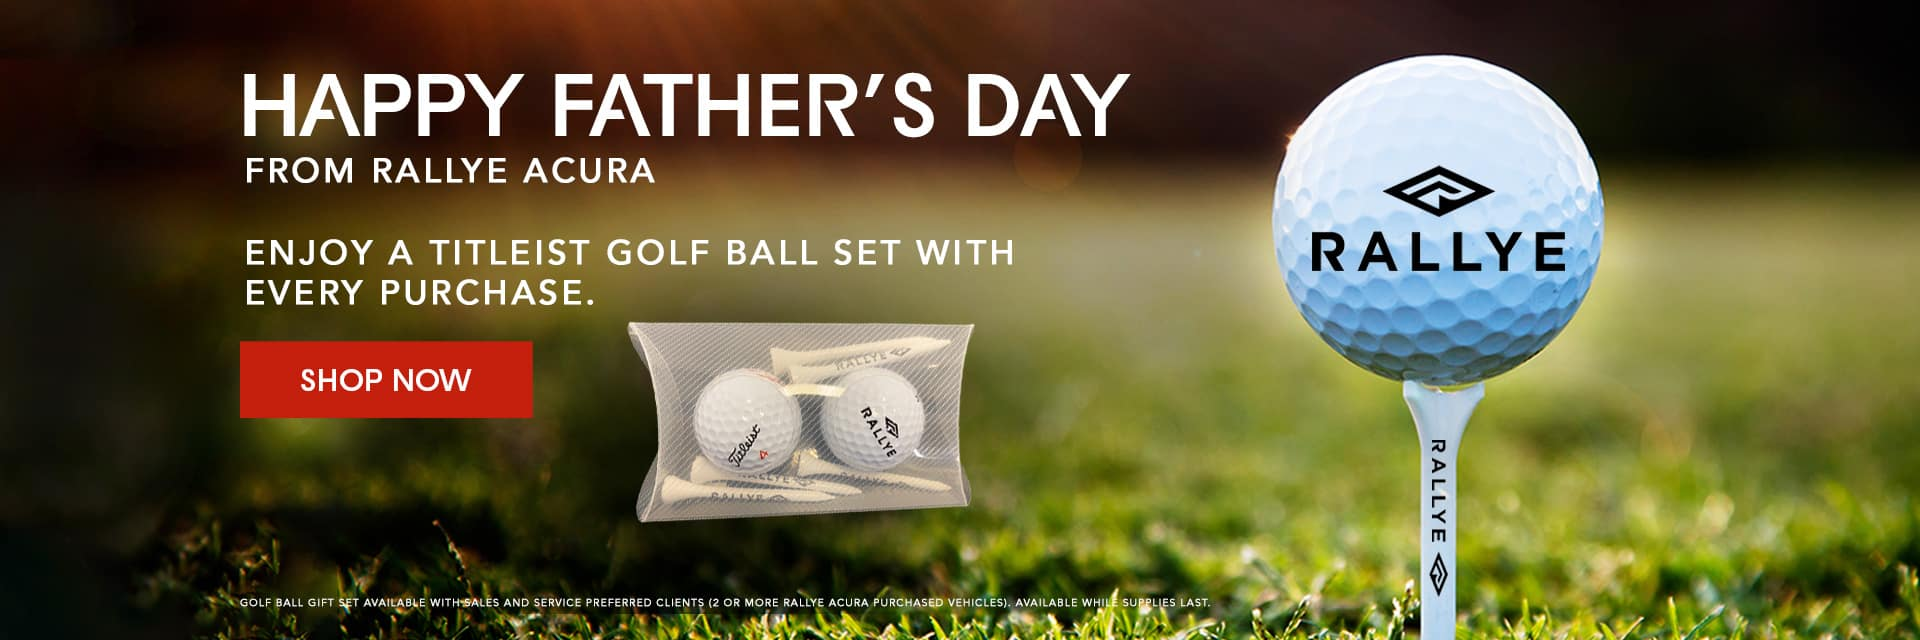 Happy Father's Day Subtext: from Rallye Acura   Enjoy a free titleist golf ball gift set with every purchase.